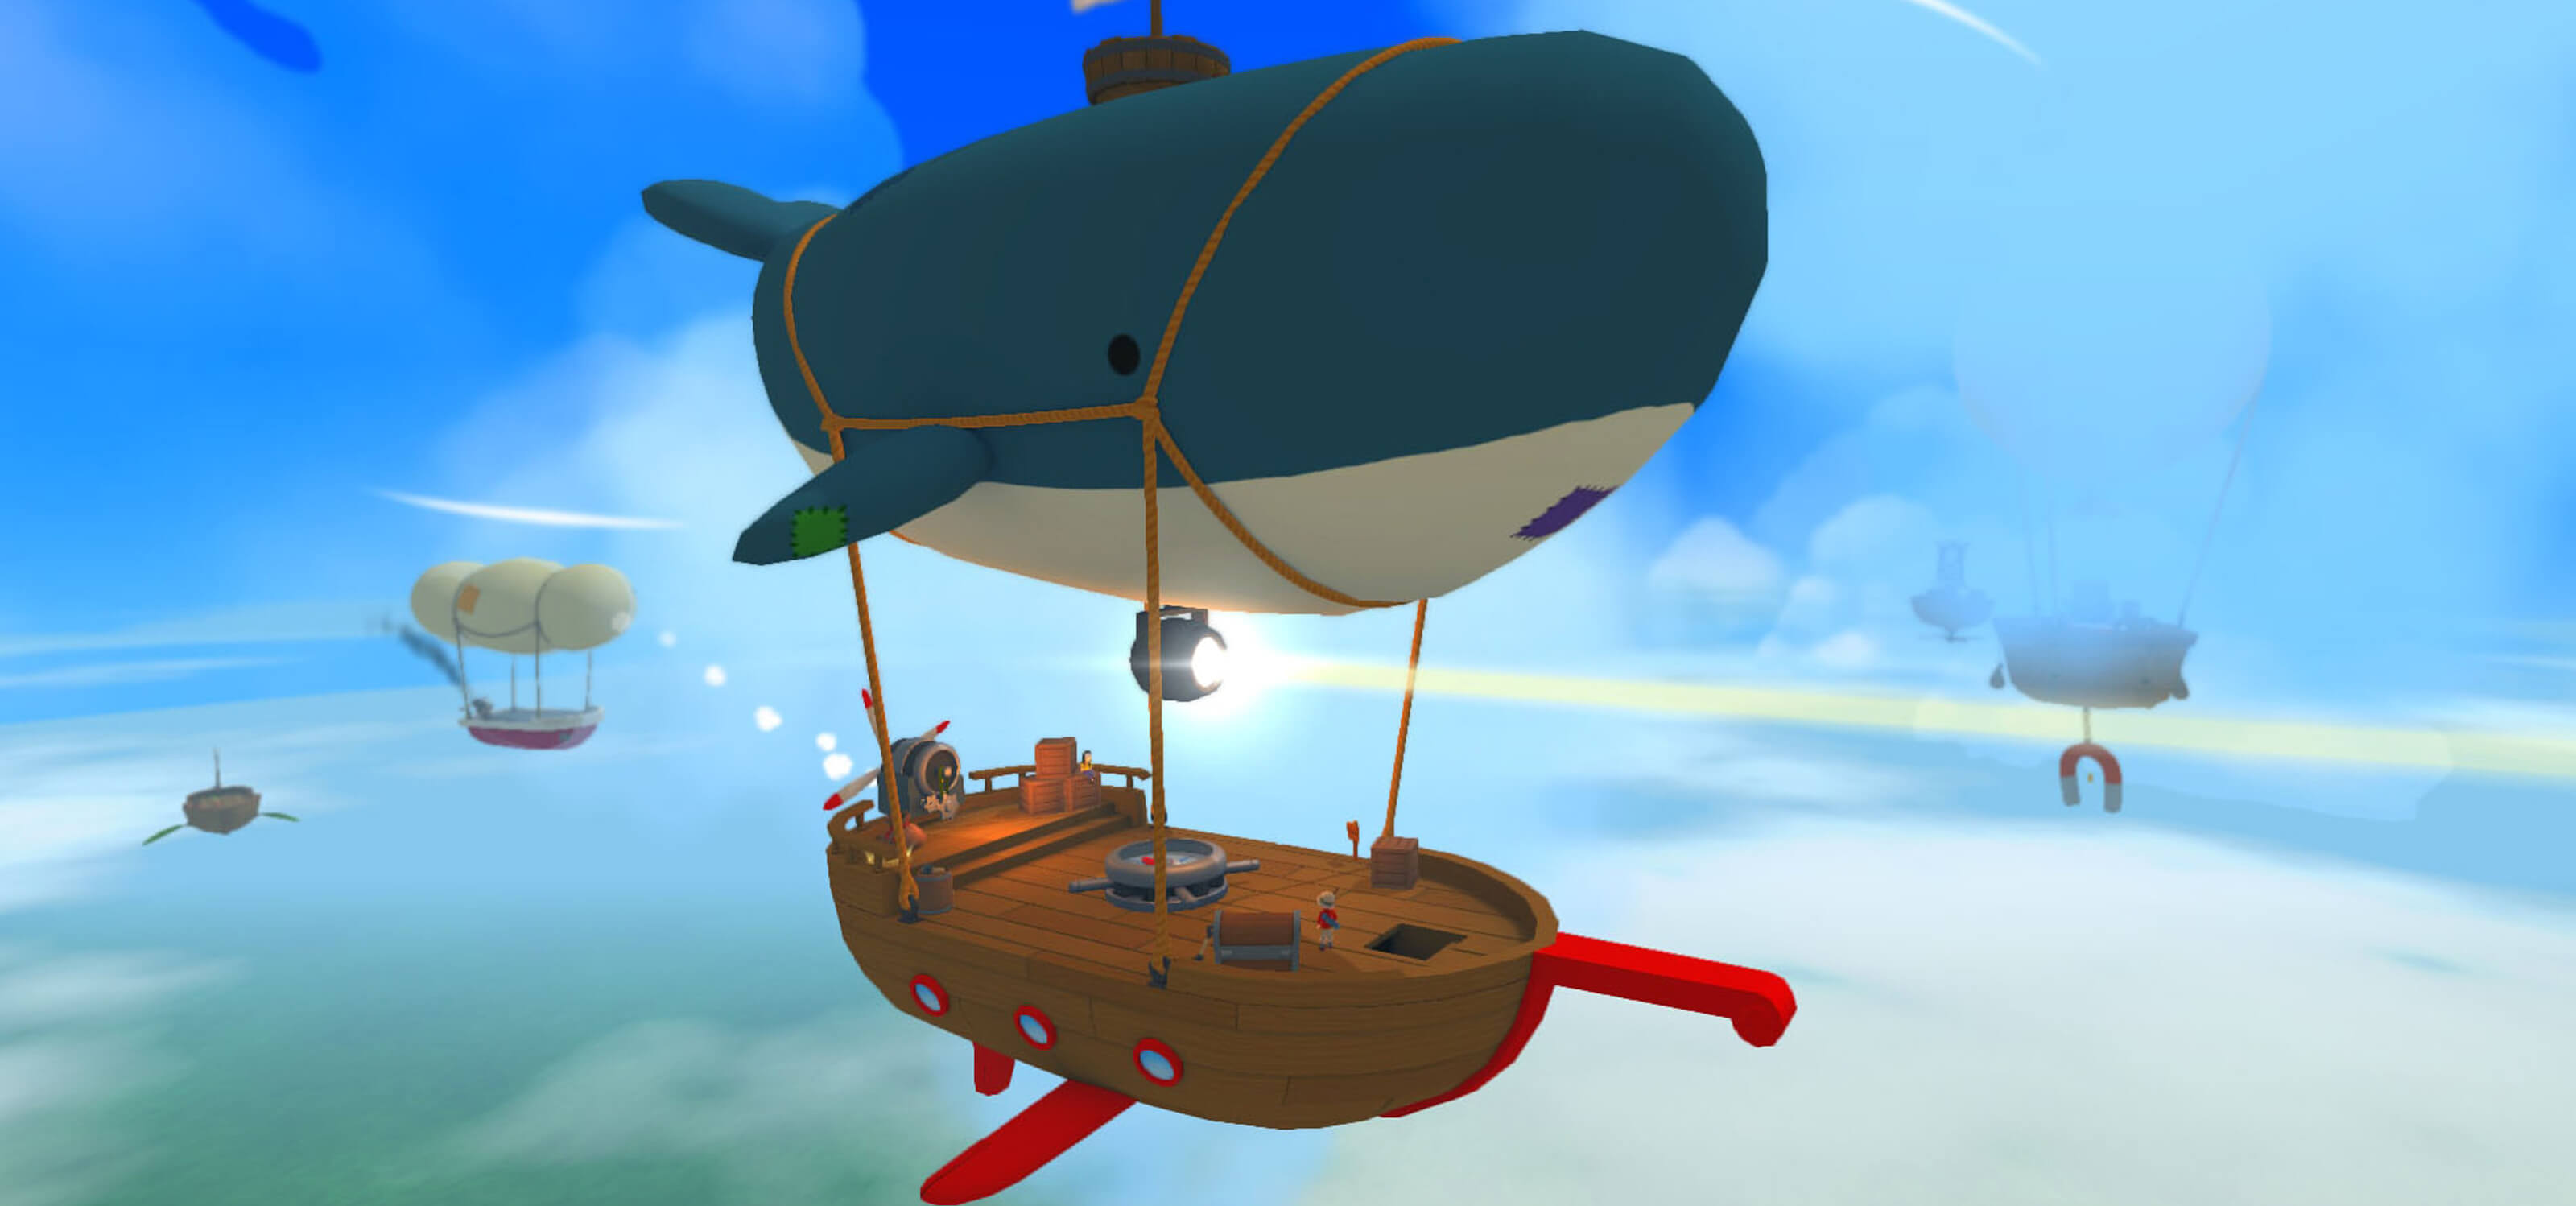 Screenshot from PolyKid Games' Poi, featuring a floating ship dangling from a whale-shaped balloon